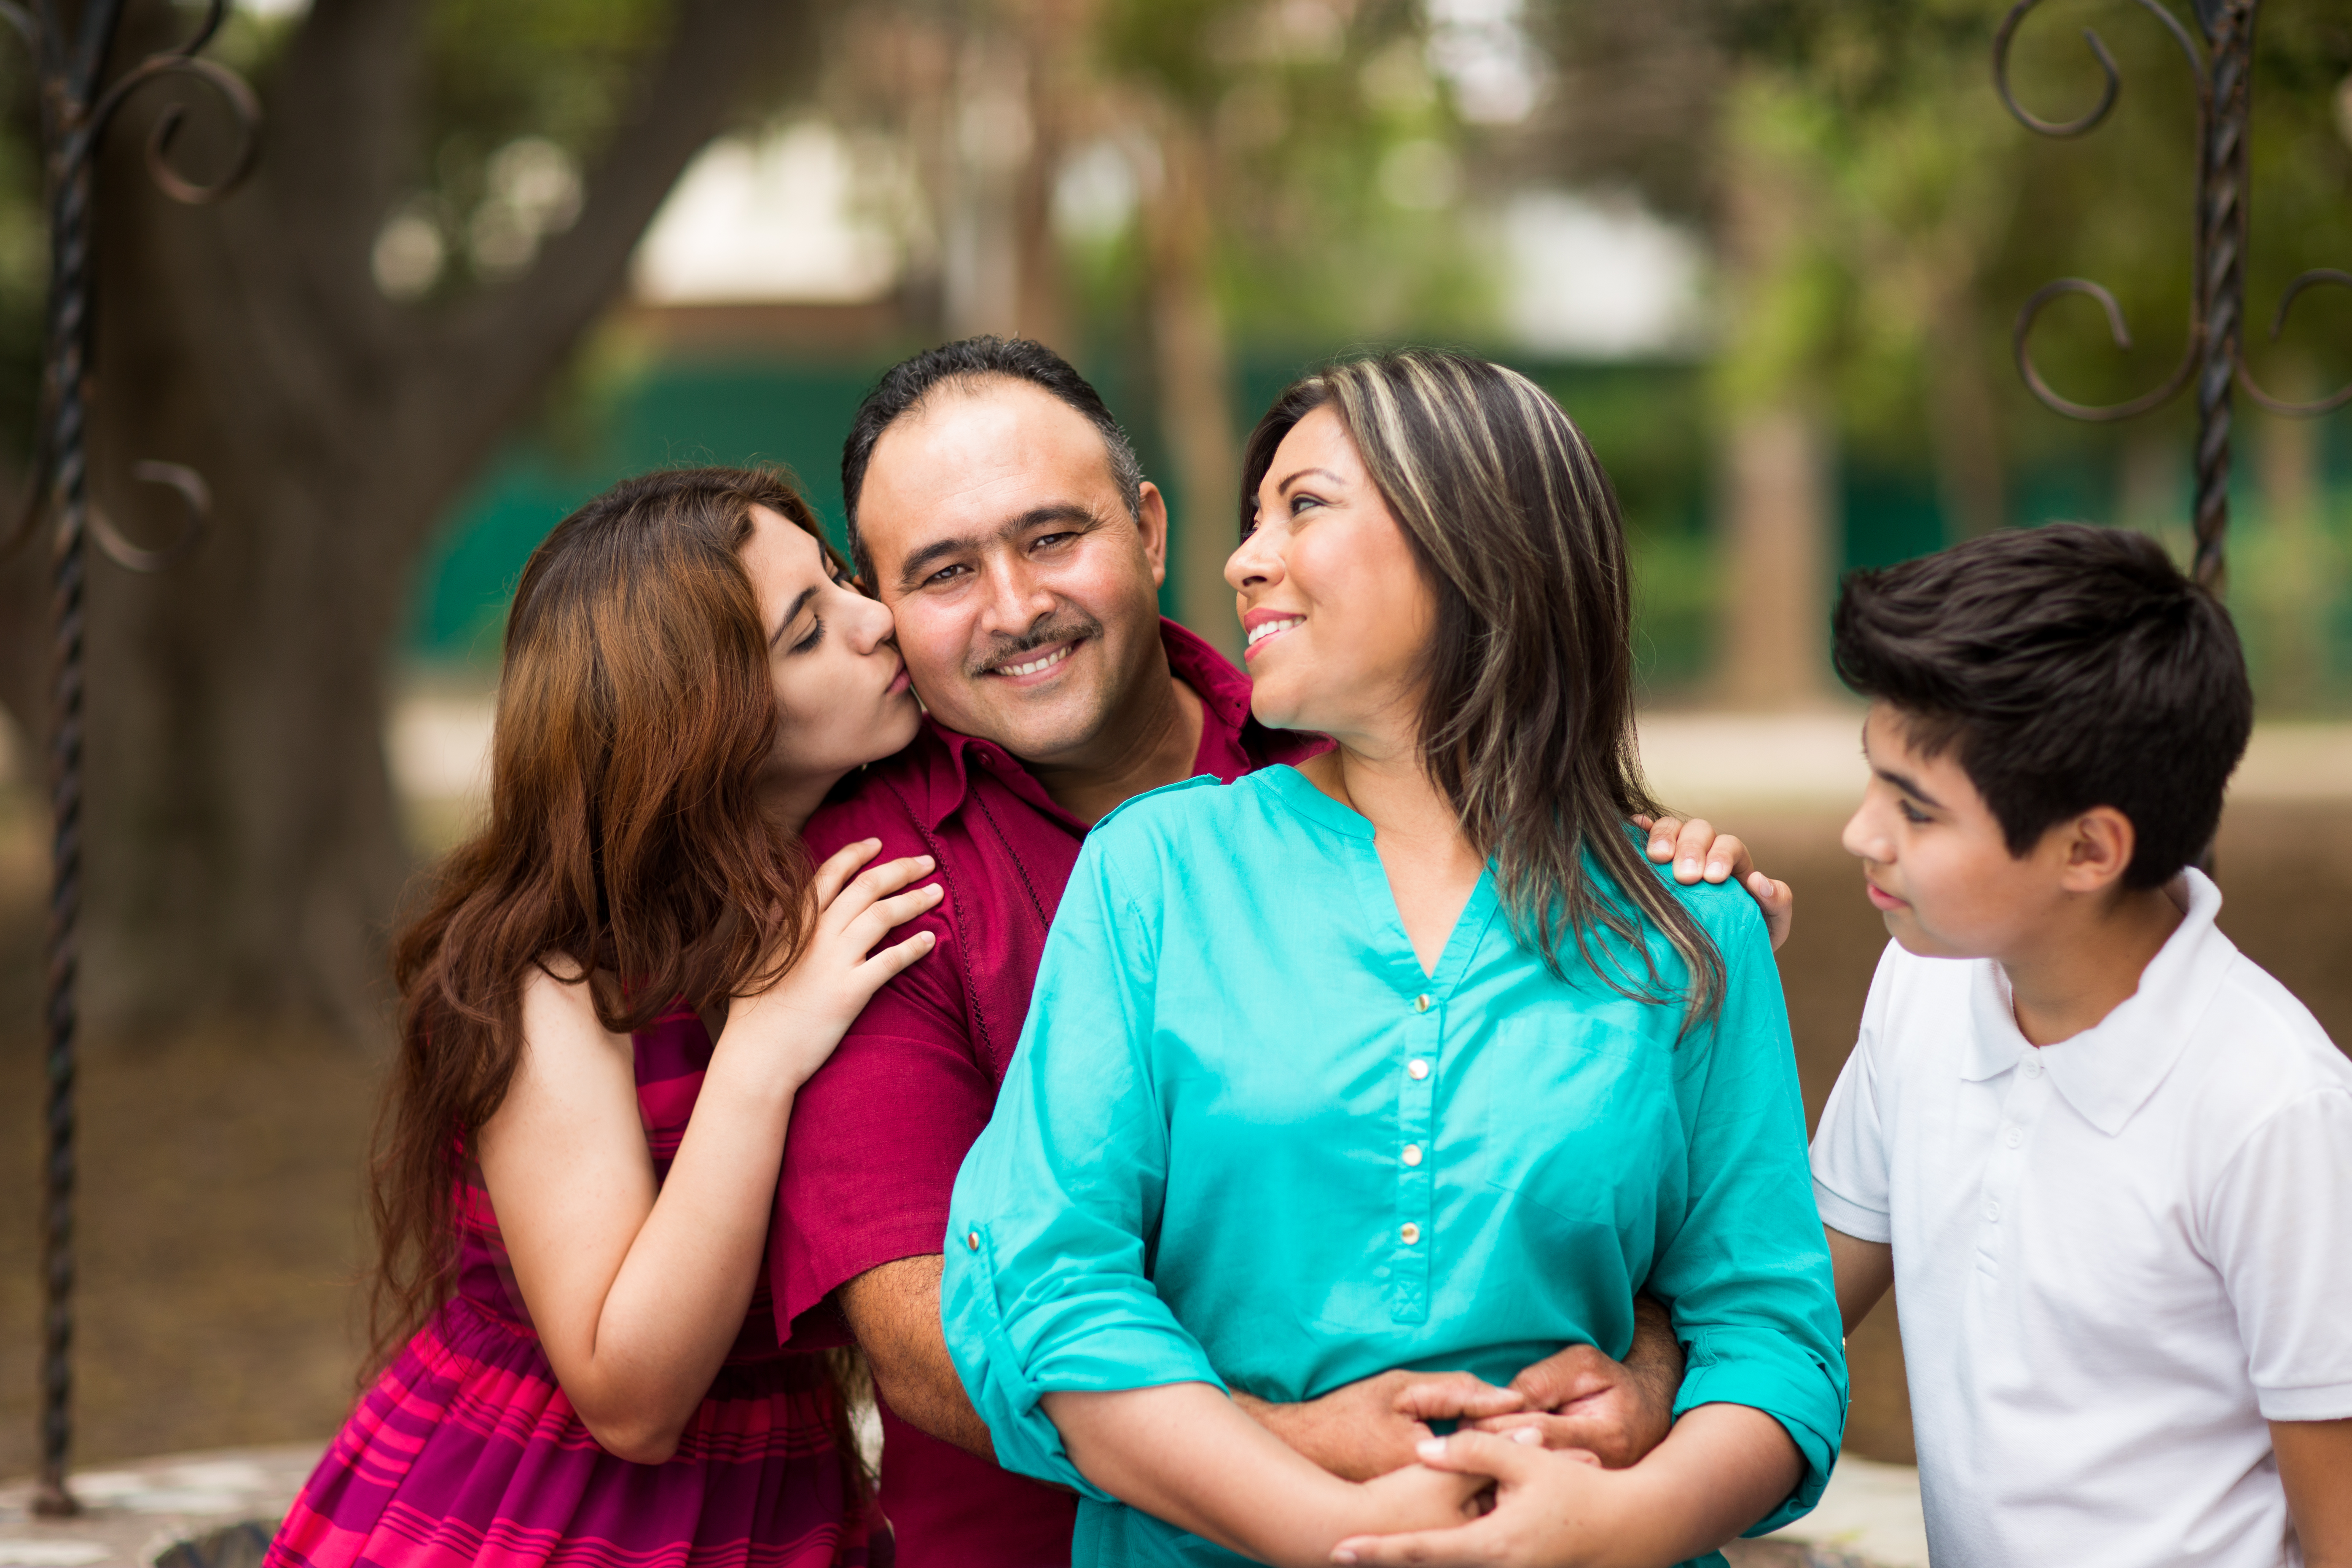 Latin family of four showing affection